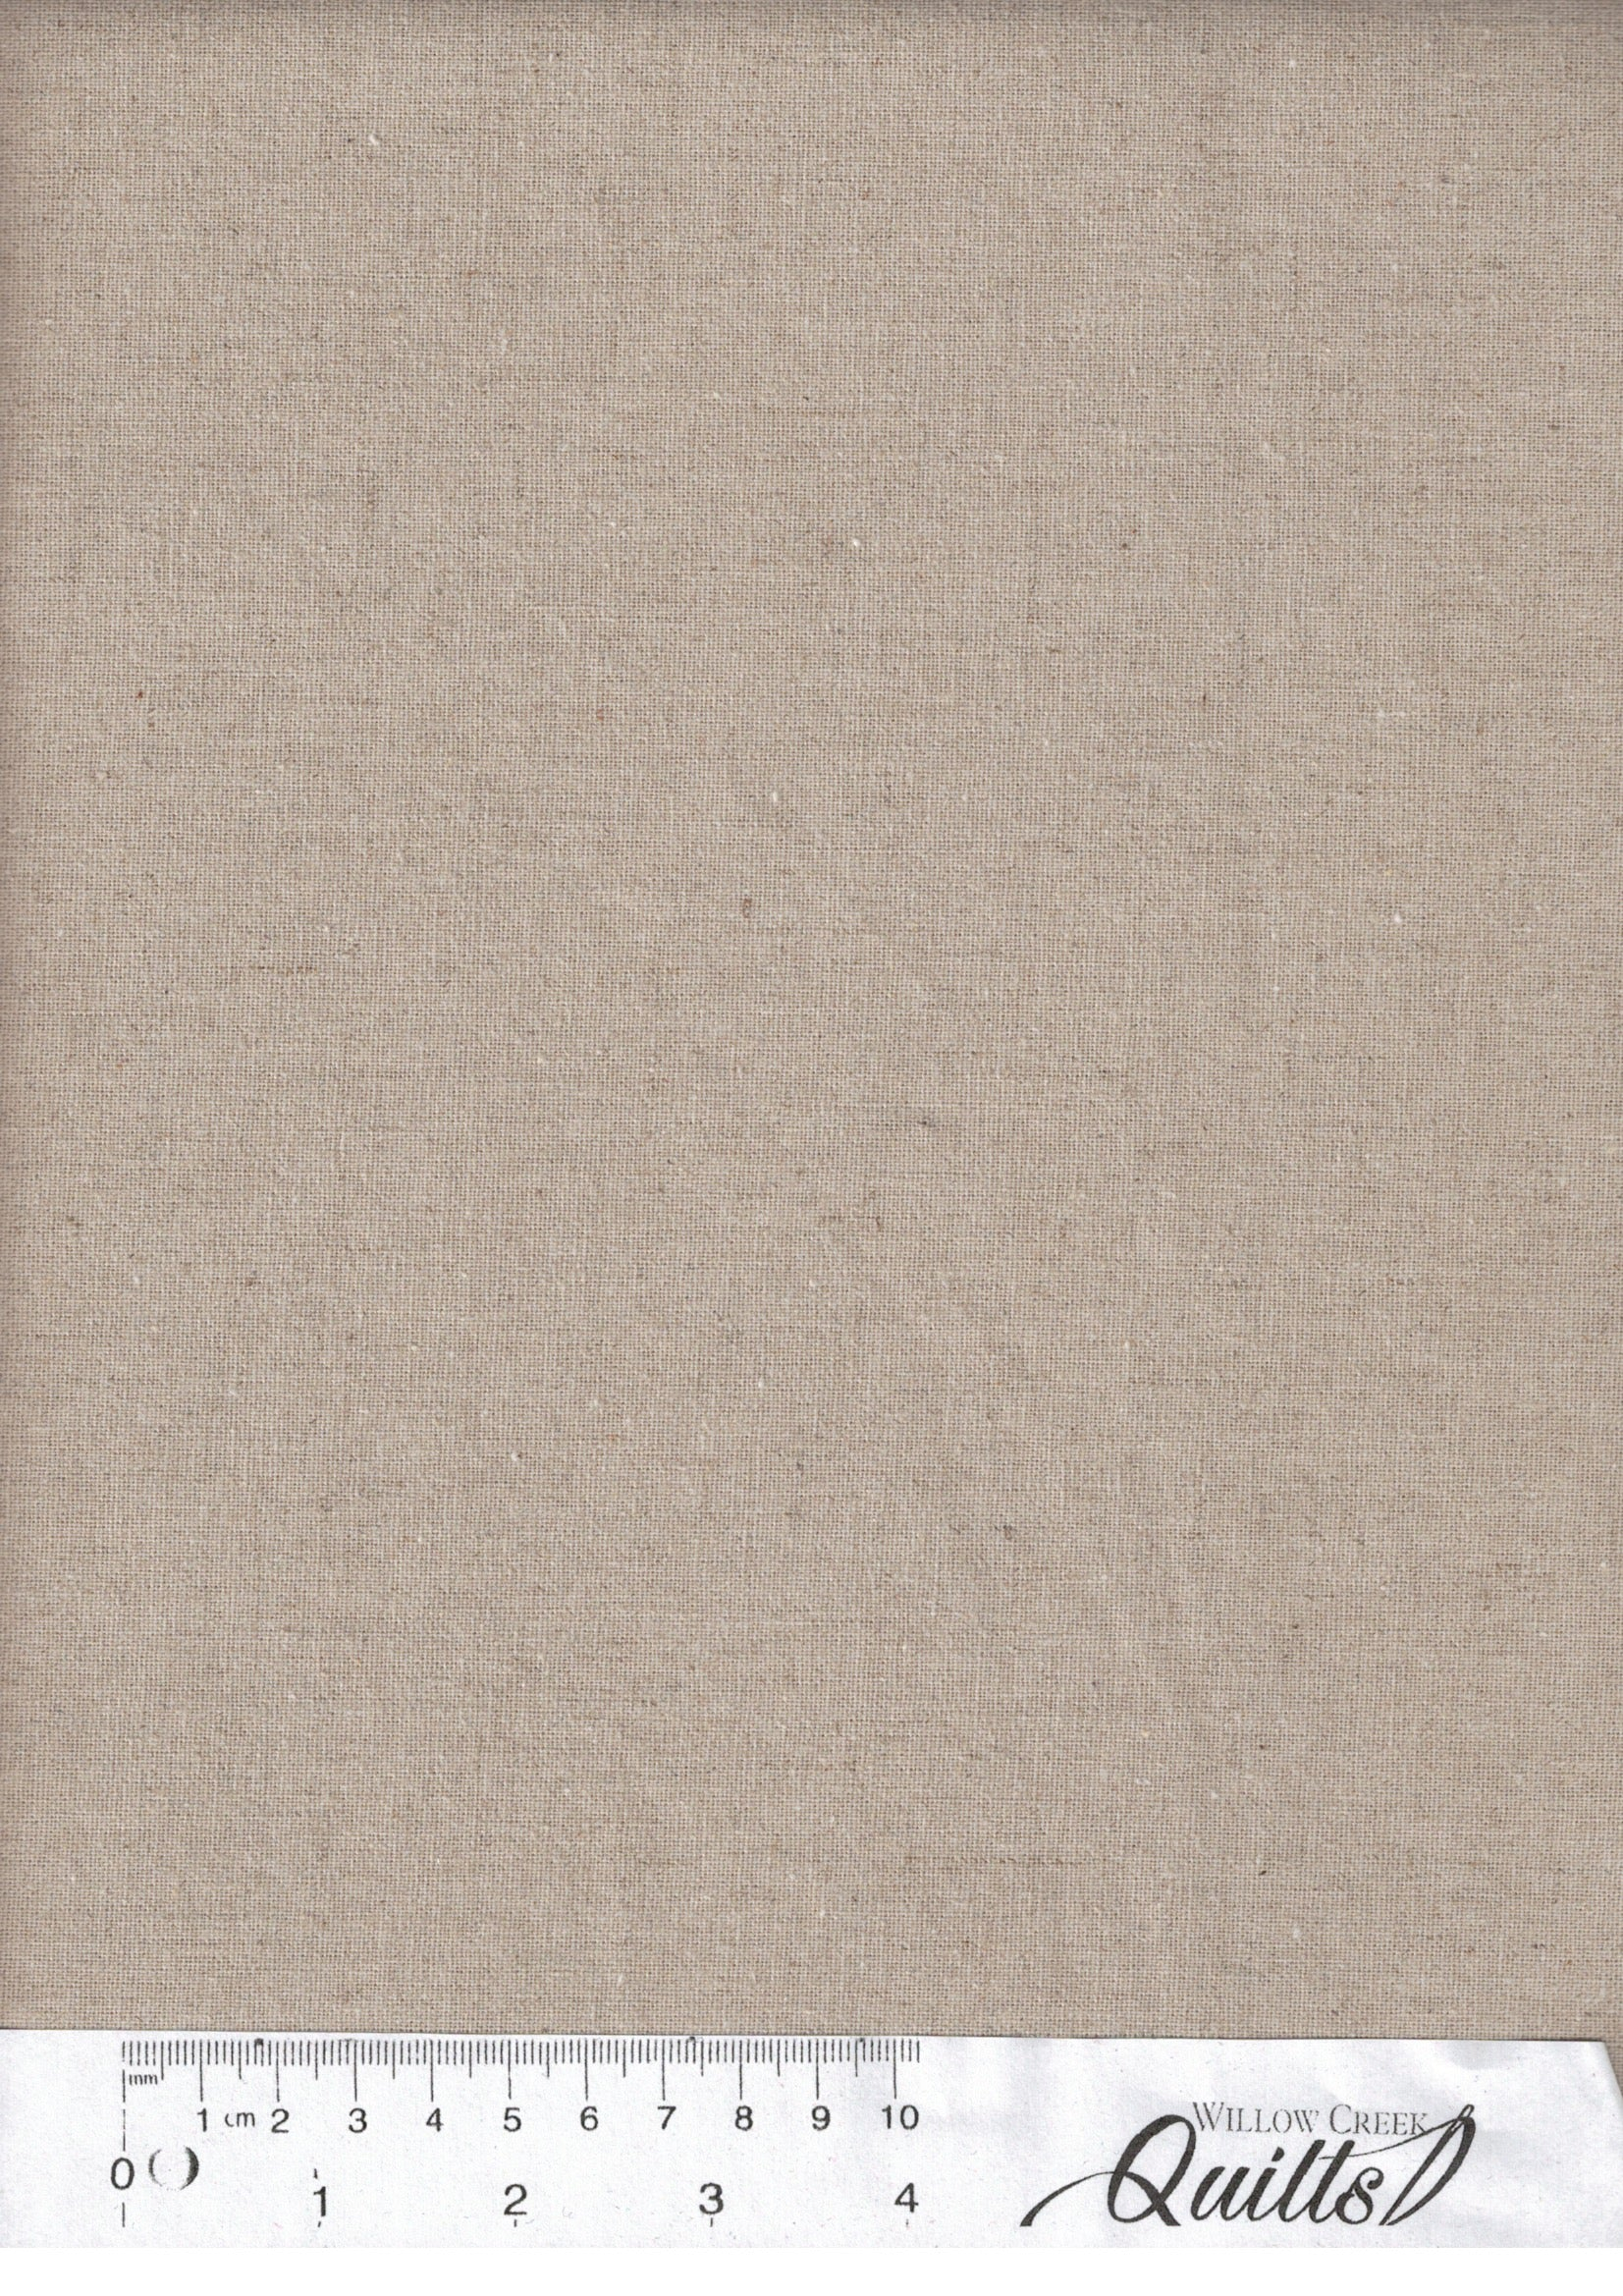 Linen Mochi Solid Unbleached Cream - 532911-11